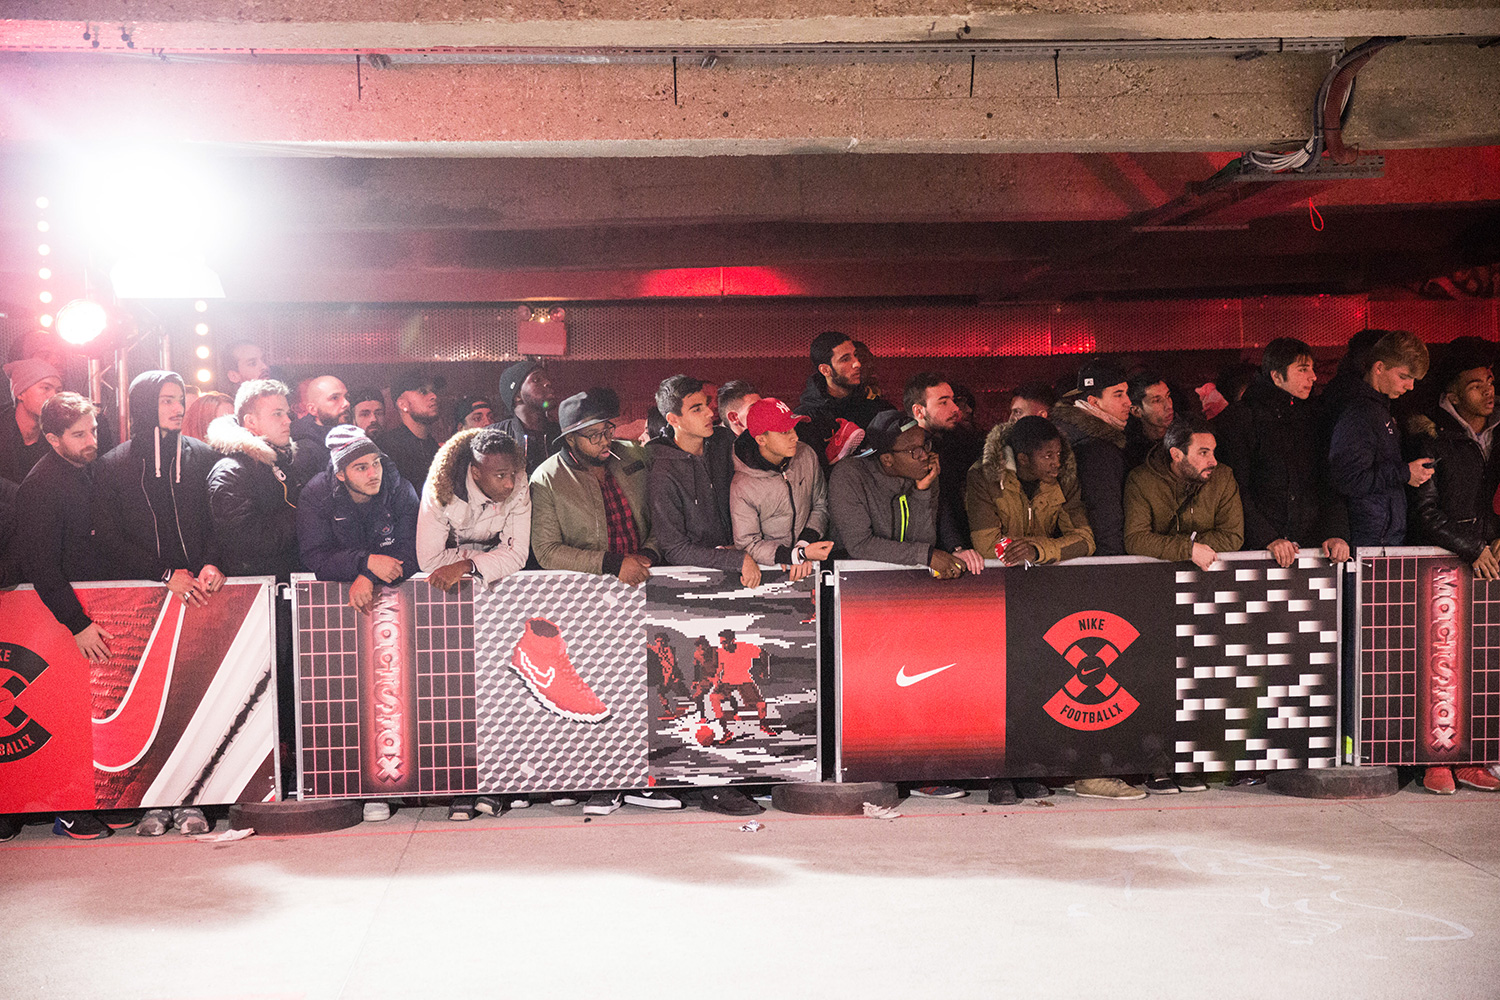 yard-x-nikefootballx-party-2